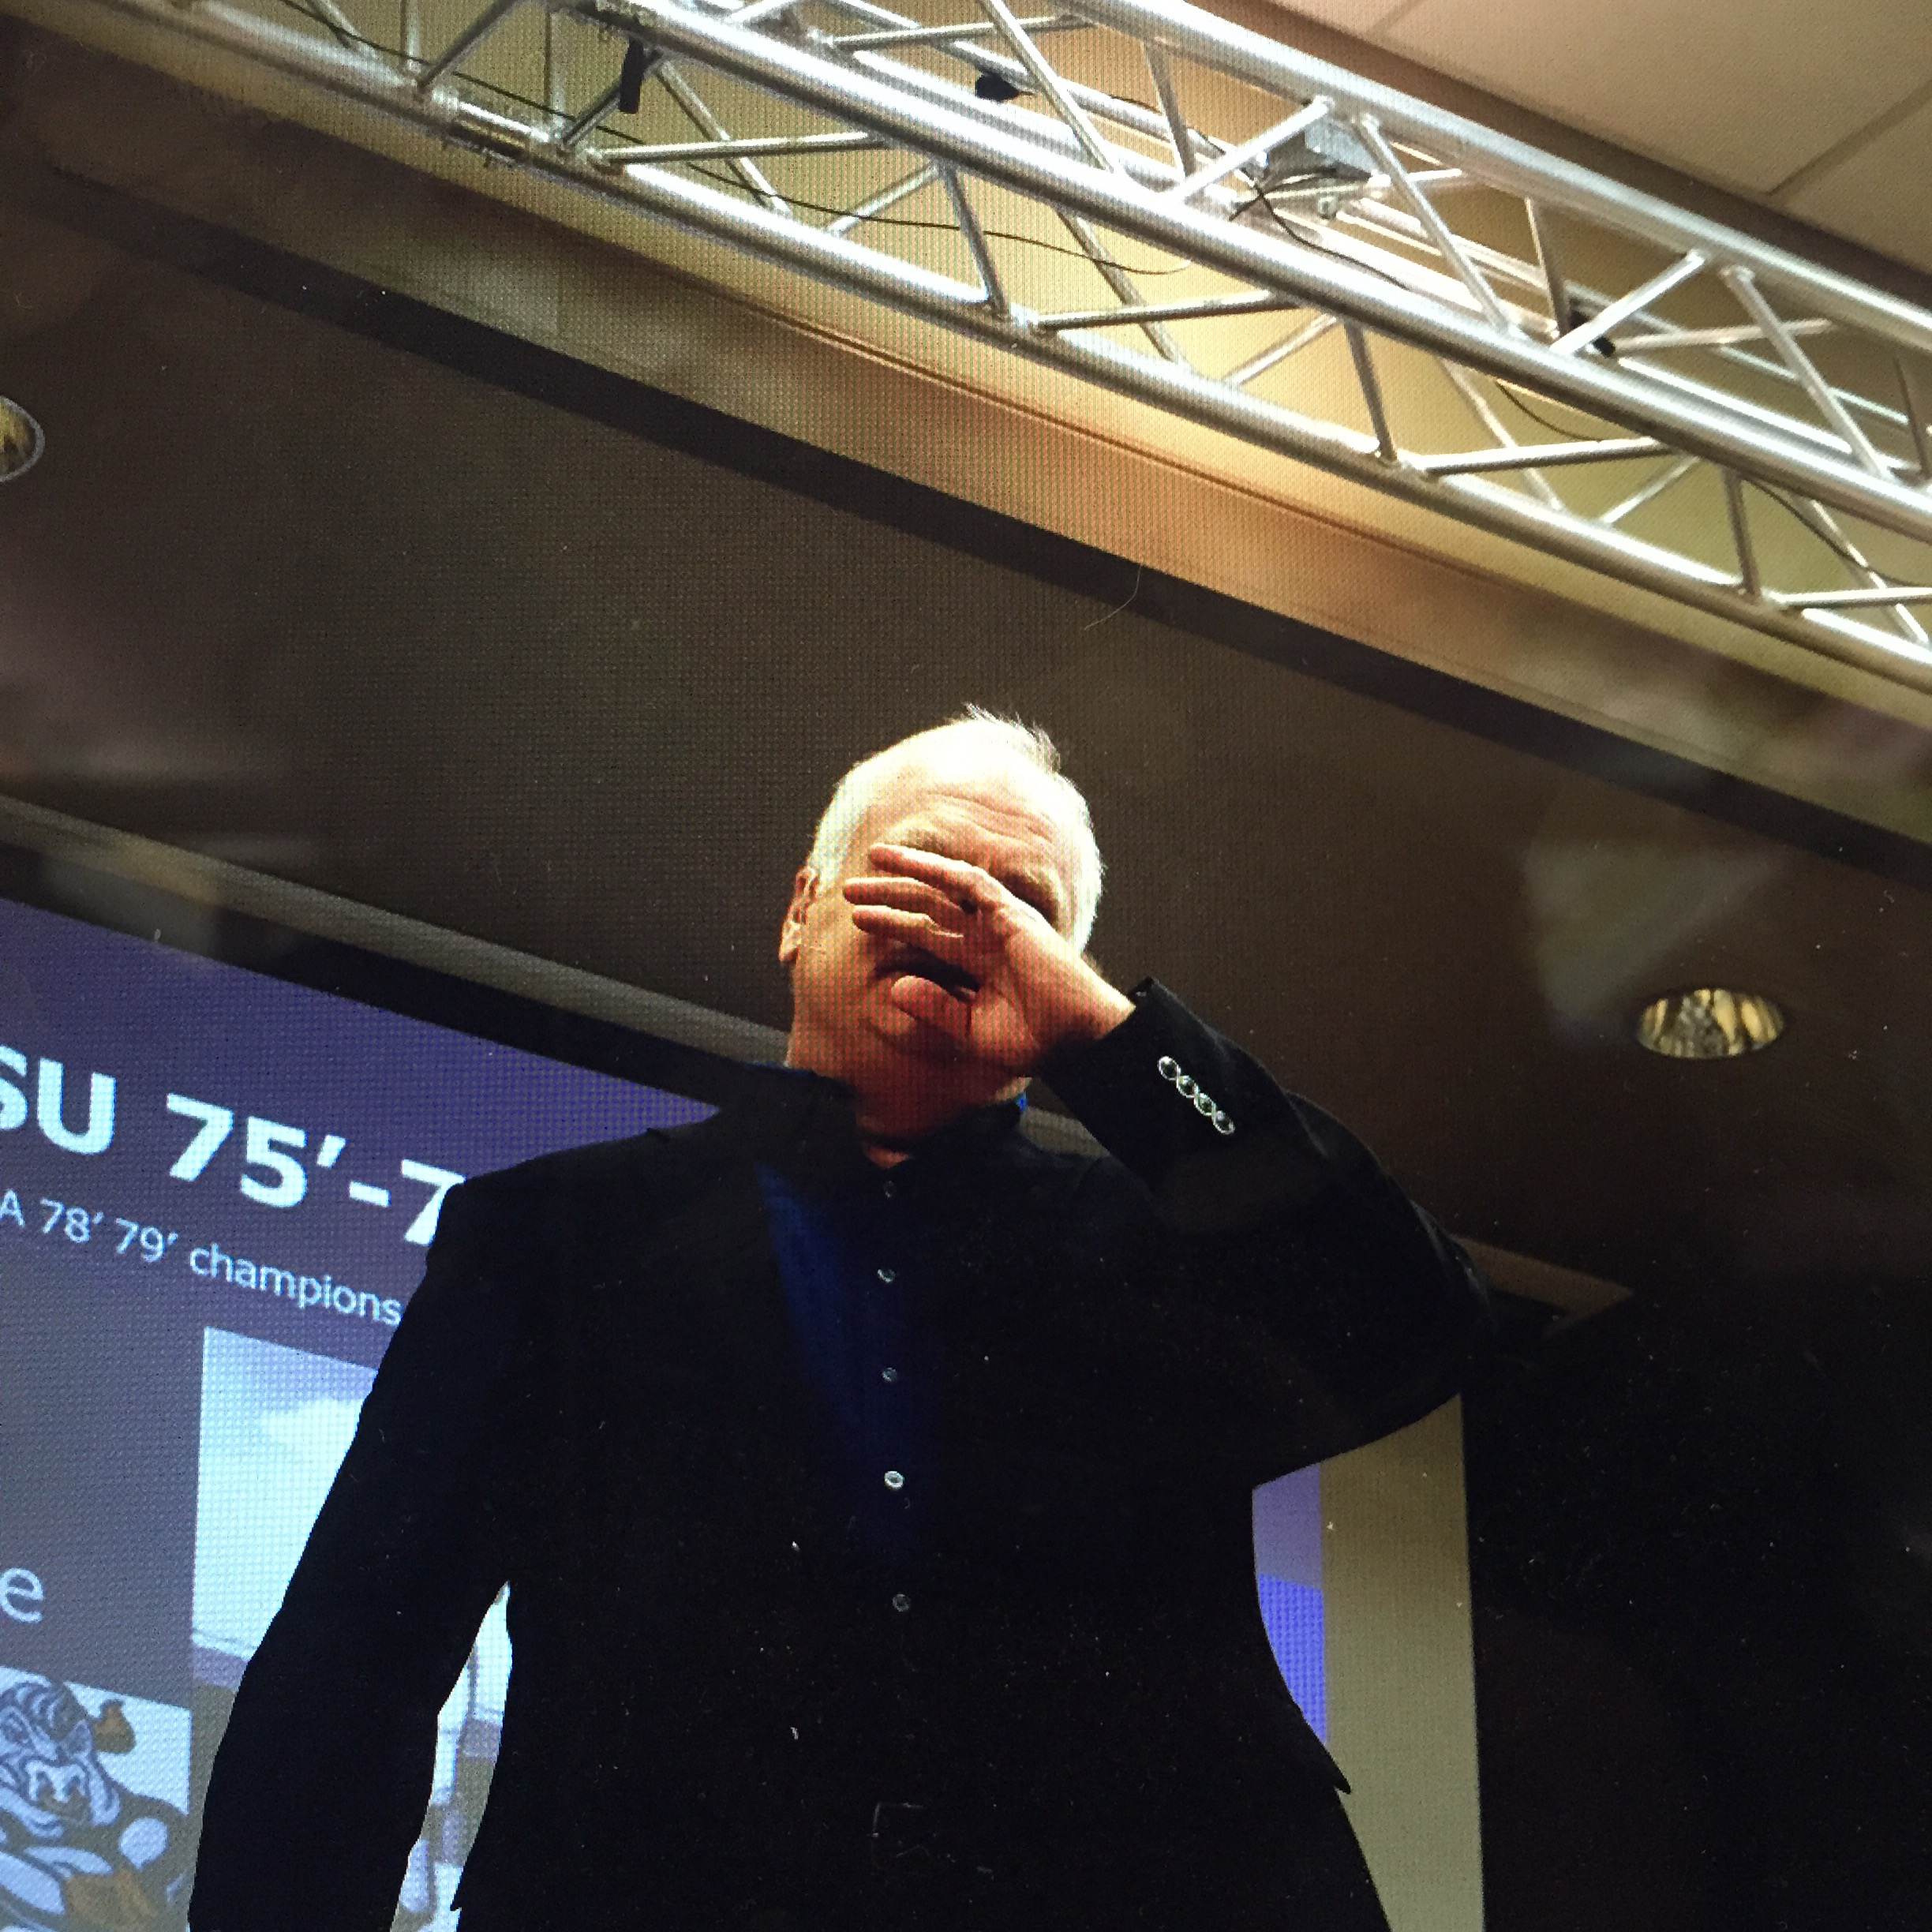 January, 2016. Midland, TX.  Former NFL quarterback Eric Hipple spoke at the first Permian Basin Mental Health Conference this past weekend about his attempted suicide and the death of his son by suicide:  http://www.mrt.com/news/top_stories/article_d8d4f44a-c7e6-11e5-92f9-77d10dfbfb42.html? TNNoMobile   #mentalhealth    #suicideprevention  #SnapshotLives    #MidlandTX